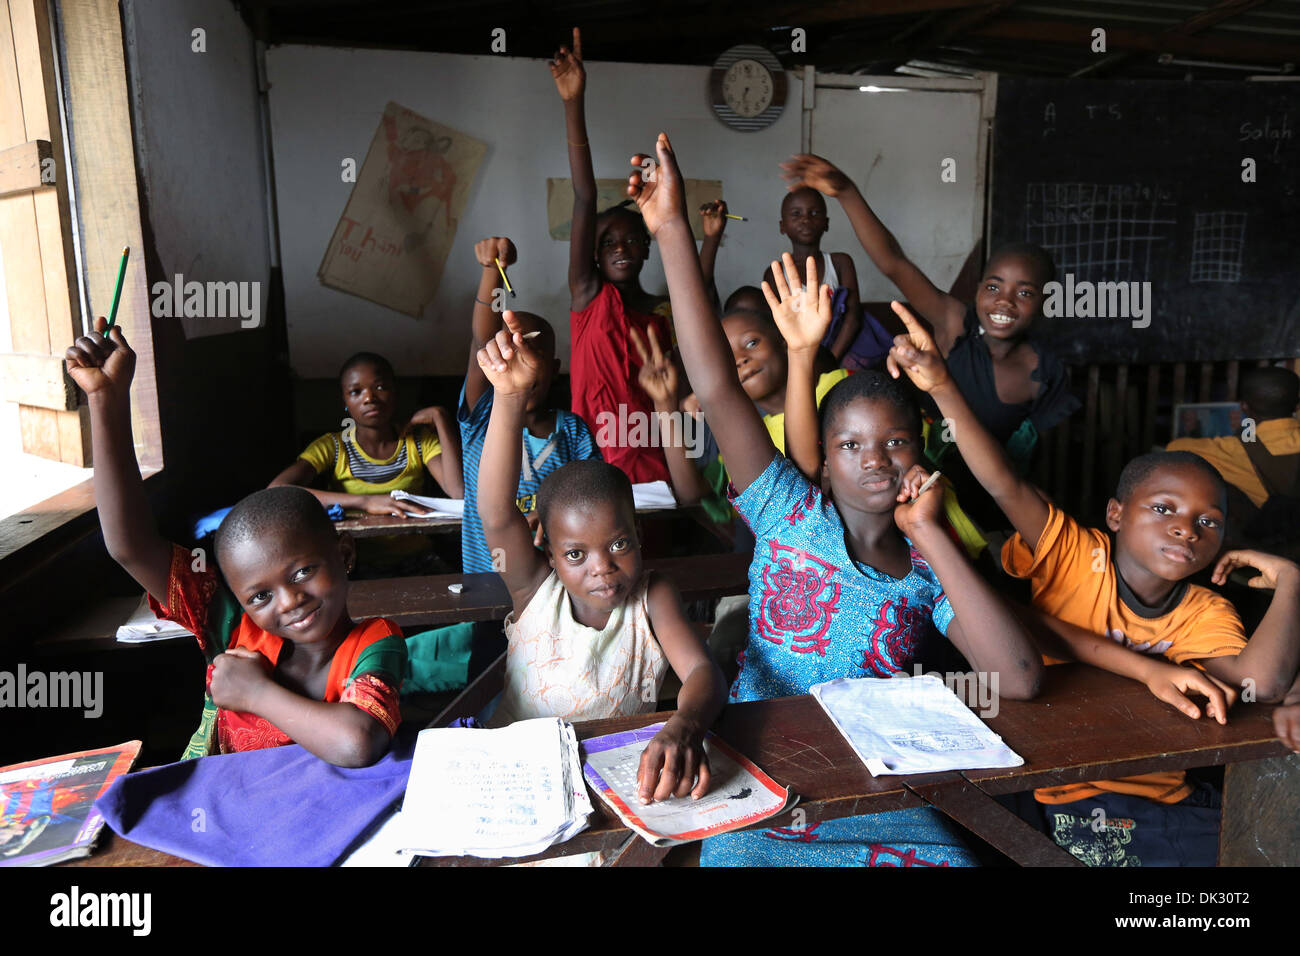 Children in a classroom of PEACE HOME, a voluntary school run by the catholic church. Township Agbogbloshie, Accra, West Africa - Stock Image